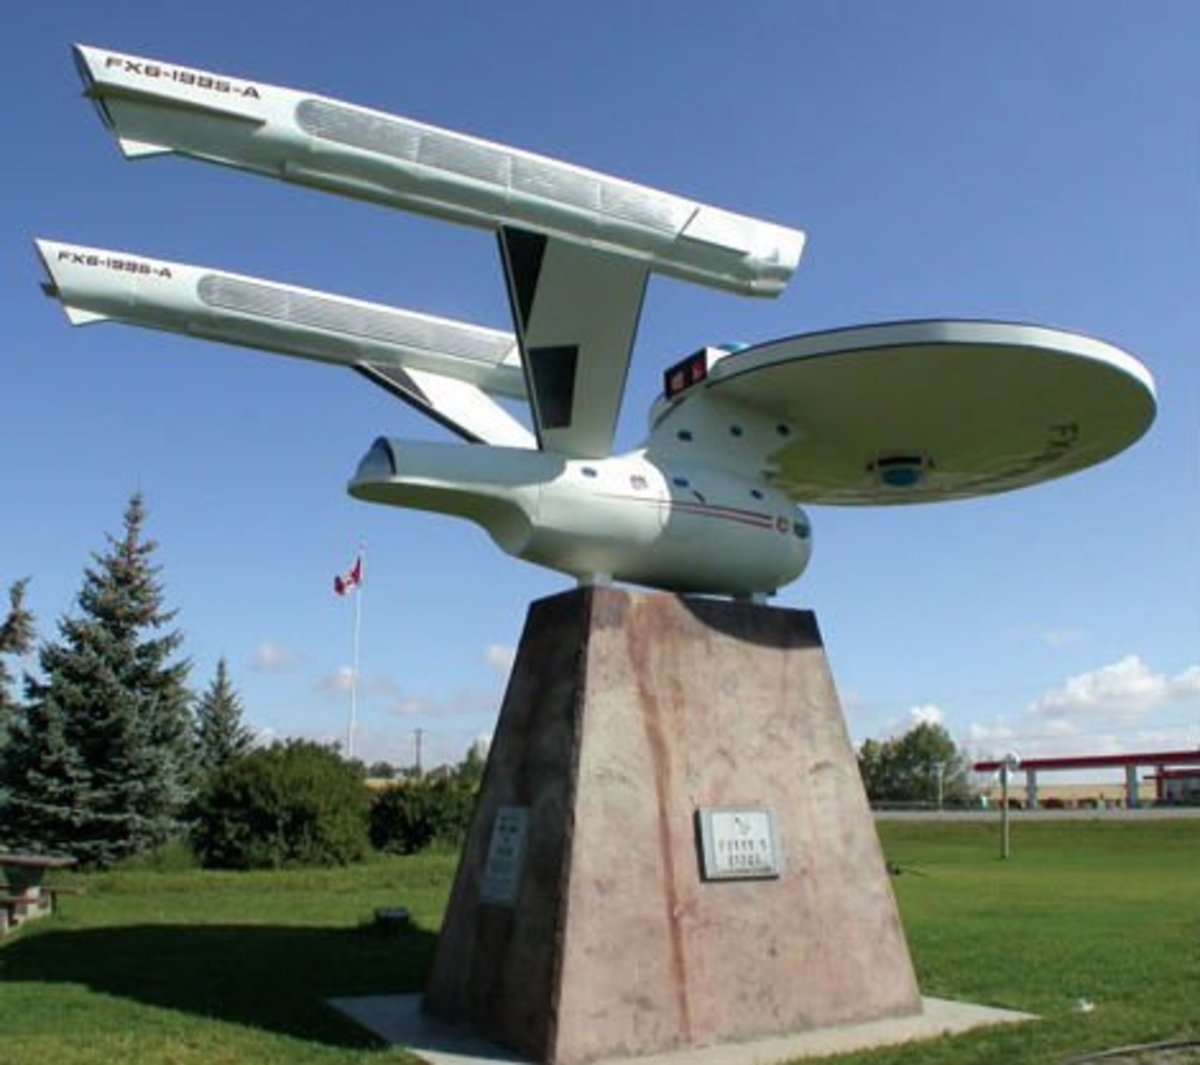 Model of the Starship Enterprise, Vulcan, Alberta